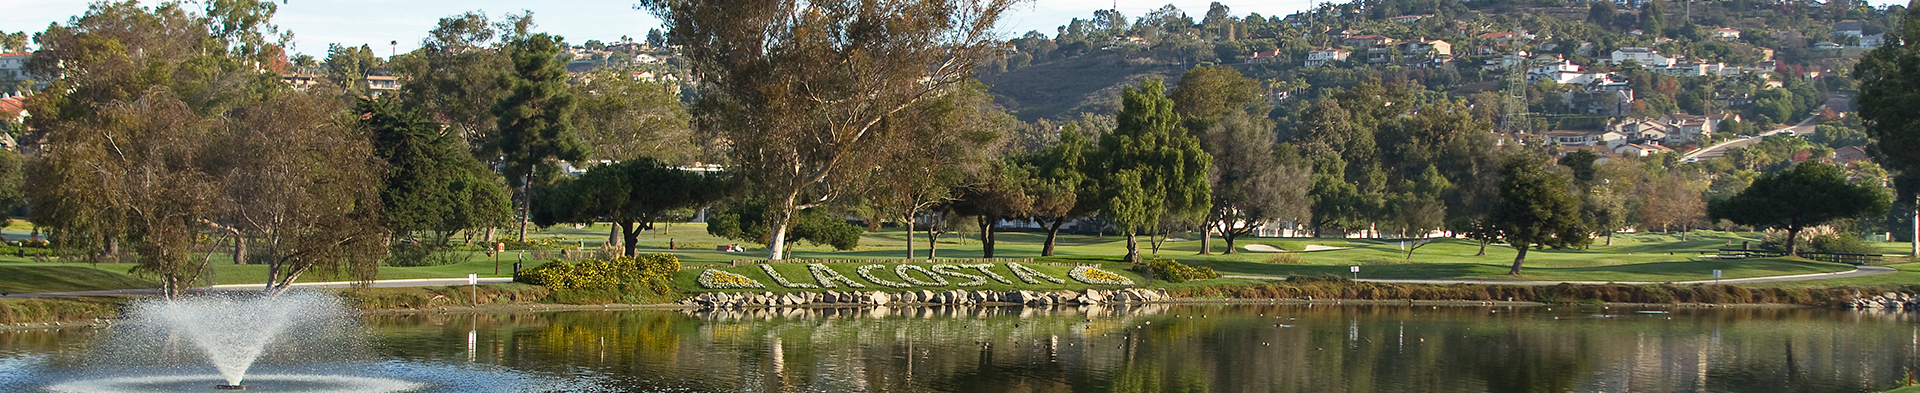 View of pond on La Costa golf course